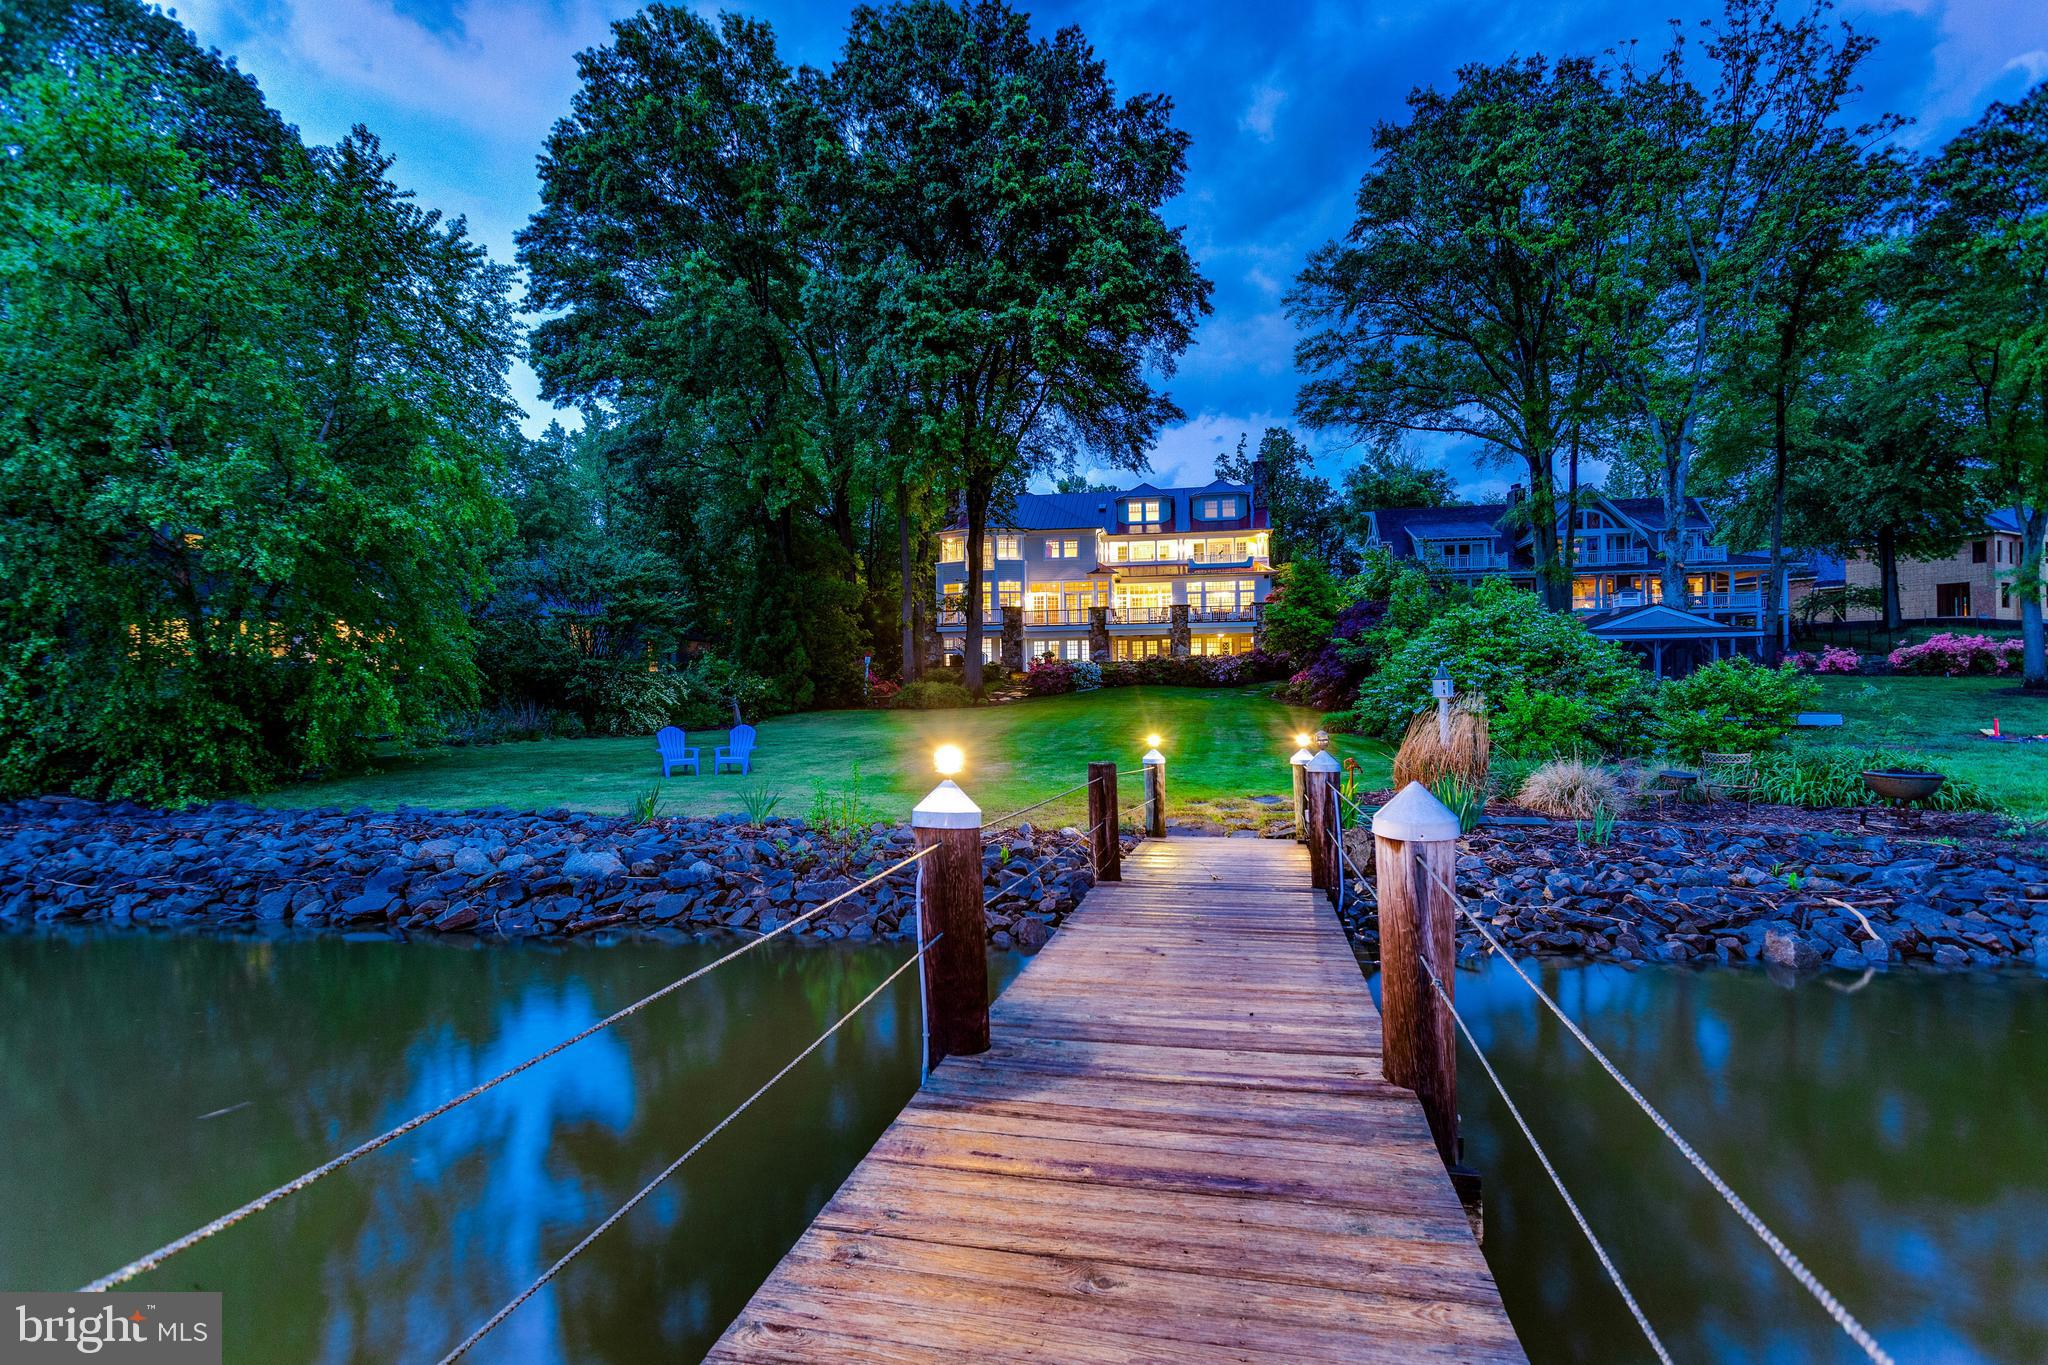 At 5229 Burke Drive the everyday is extraordinary. A home unlike any other, this custom designed waterfront home is a true oasis; a home that provides for endless fun and adventure also evokes an everyday inner peace and quiet. Watch your yard come to life with every color imaginable in the spring, play hockey on a frozen river in the winter, throw the BEST fourth of July party in all of Alexandria in the summer, and when the first cool day arrives in the fall know that the magic of nature is just beginning. Enjoy your morning coffee while watching deer across the river take their morning drink, become best friends with a Great Blue Heron who finds refuge on your dock, get out on the water and boat every day. This home was built to allow you to live life to the fullest, this a home is meant to be enjoyed by many, this home will be your happy place. Unparalleled water views from every room in the house. 5 Bedrooms, 5 full and 2 half baths, a completely separate au pair/in-law suite above the garage, 2 full kitchens with top of the line appliances. Wall to wall windows across the back of the house.